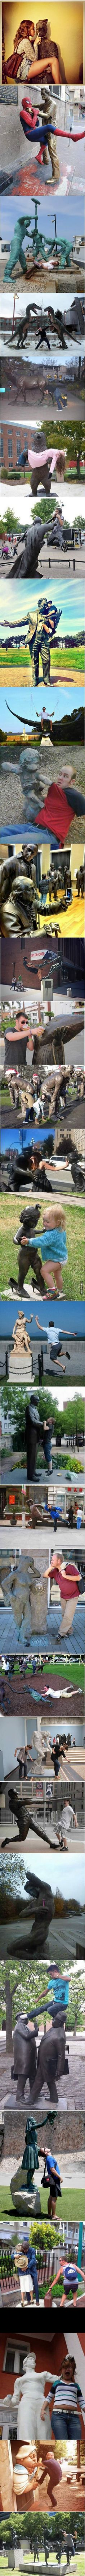 Fun with statues - Fun with statues Webfail – Fail Images and Fail Videos - Stupid Funny, Funny Cute, The Funny, Hilarious, Funny Stuff, Memes Lol, Funny Memes, Jokes, Fun With Statues